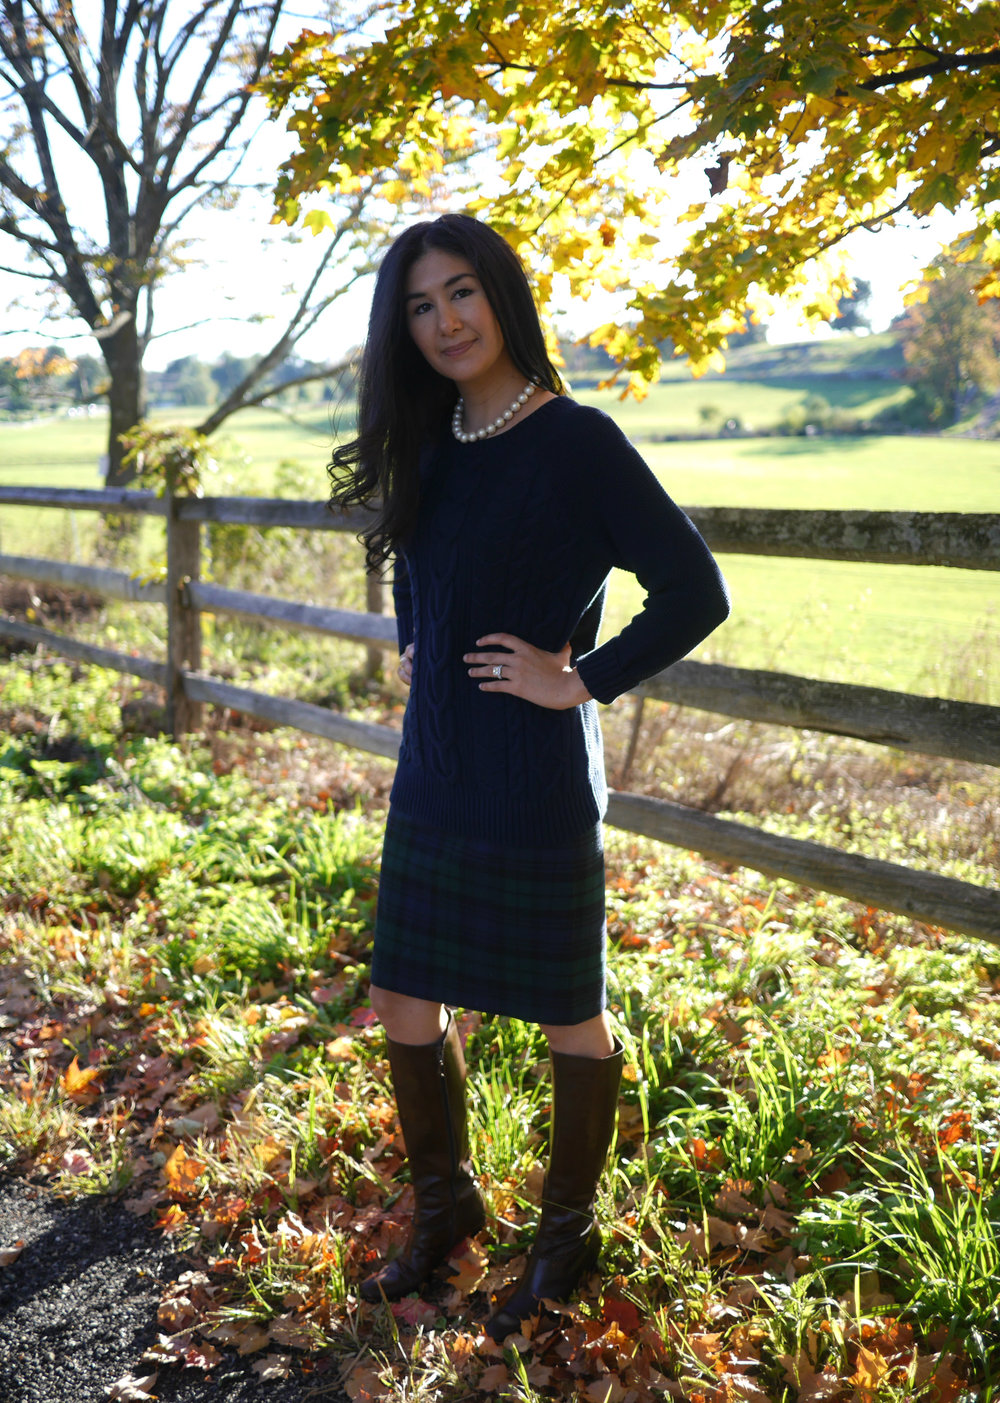 LL Bean Bailey Island Sweater J Crew No 2 Pencil Skirt Salvatore Ferragamo Boots